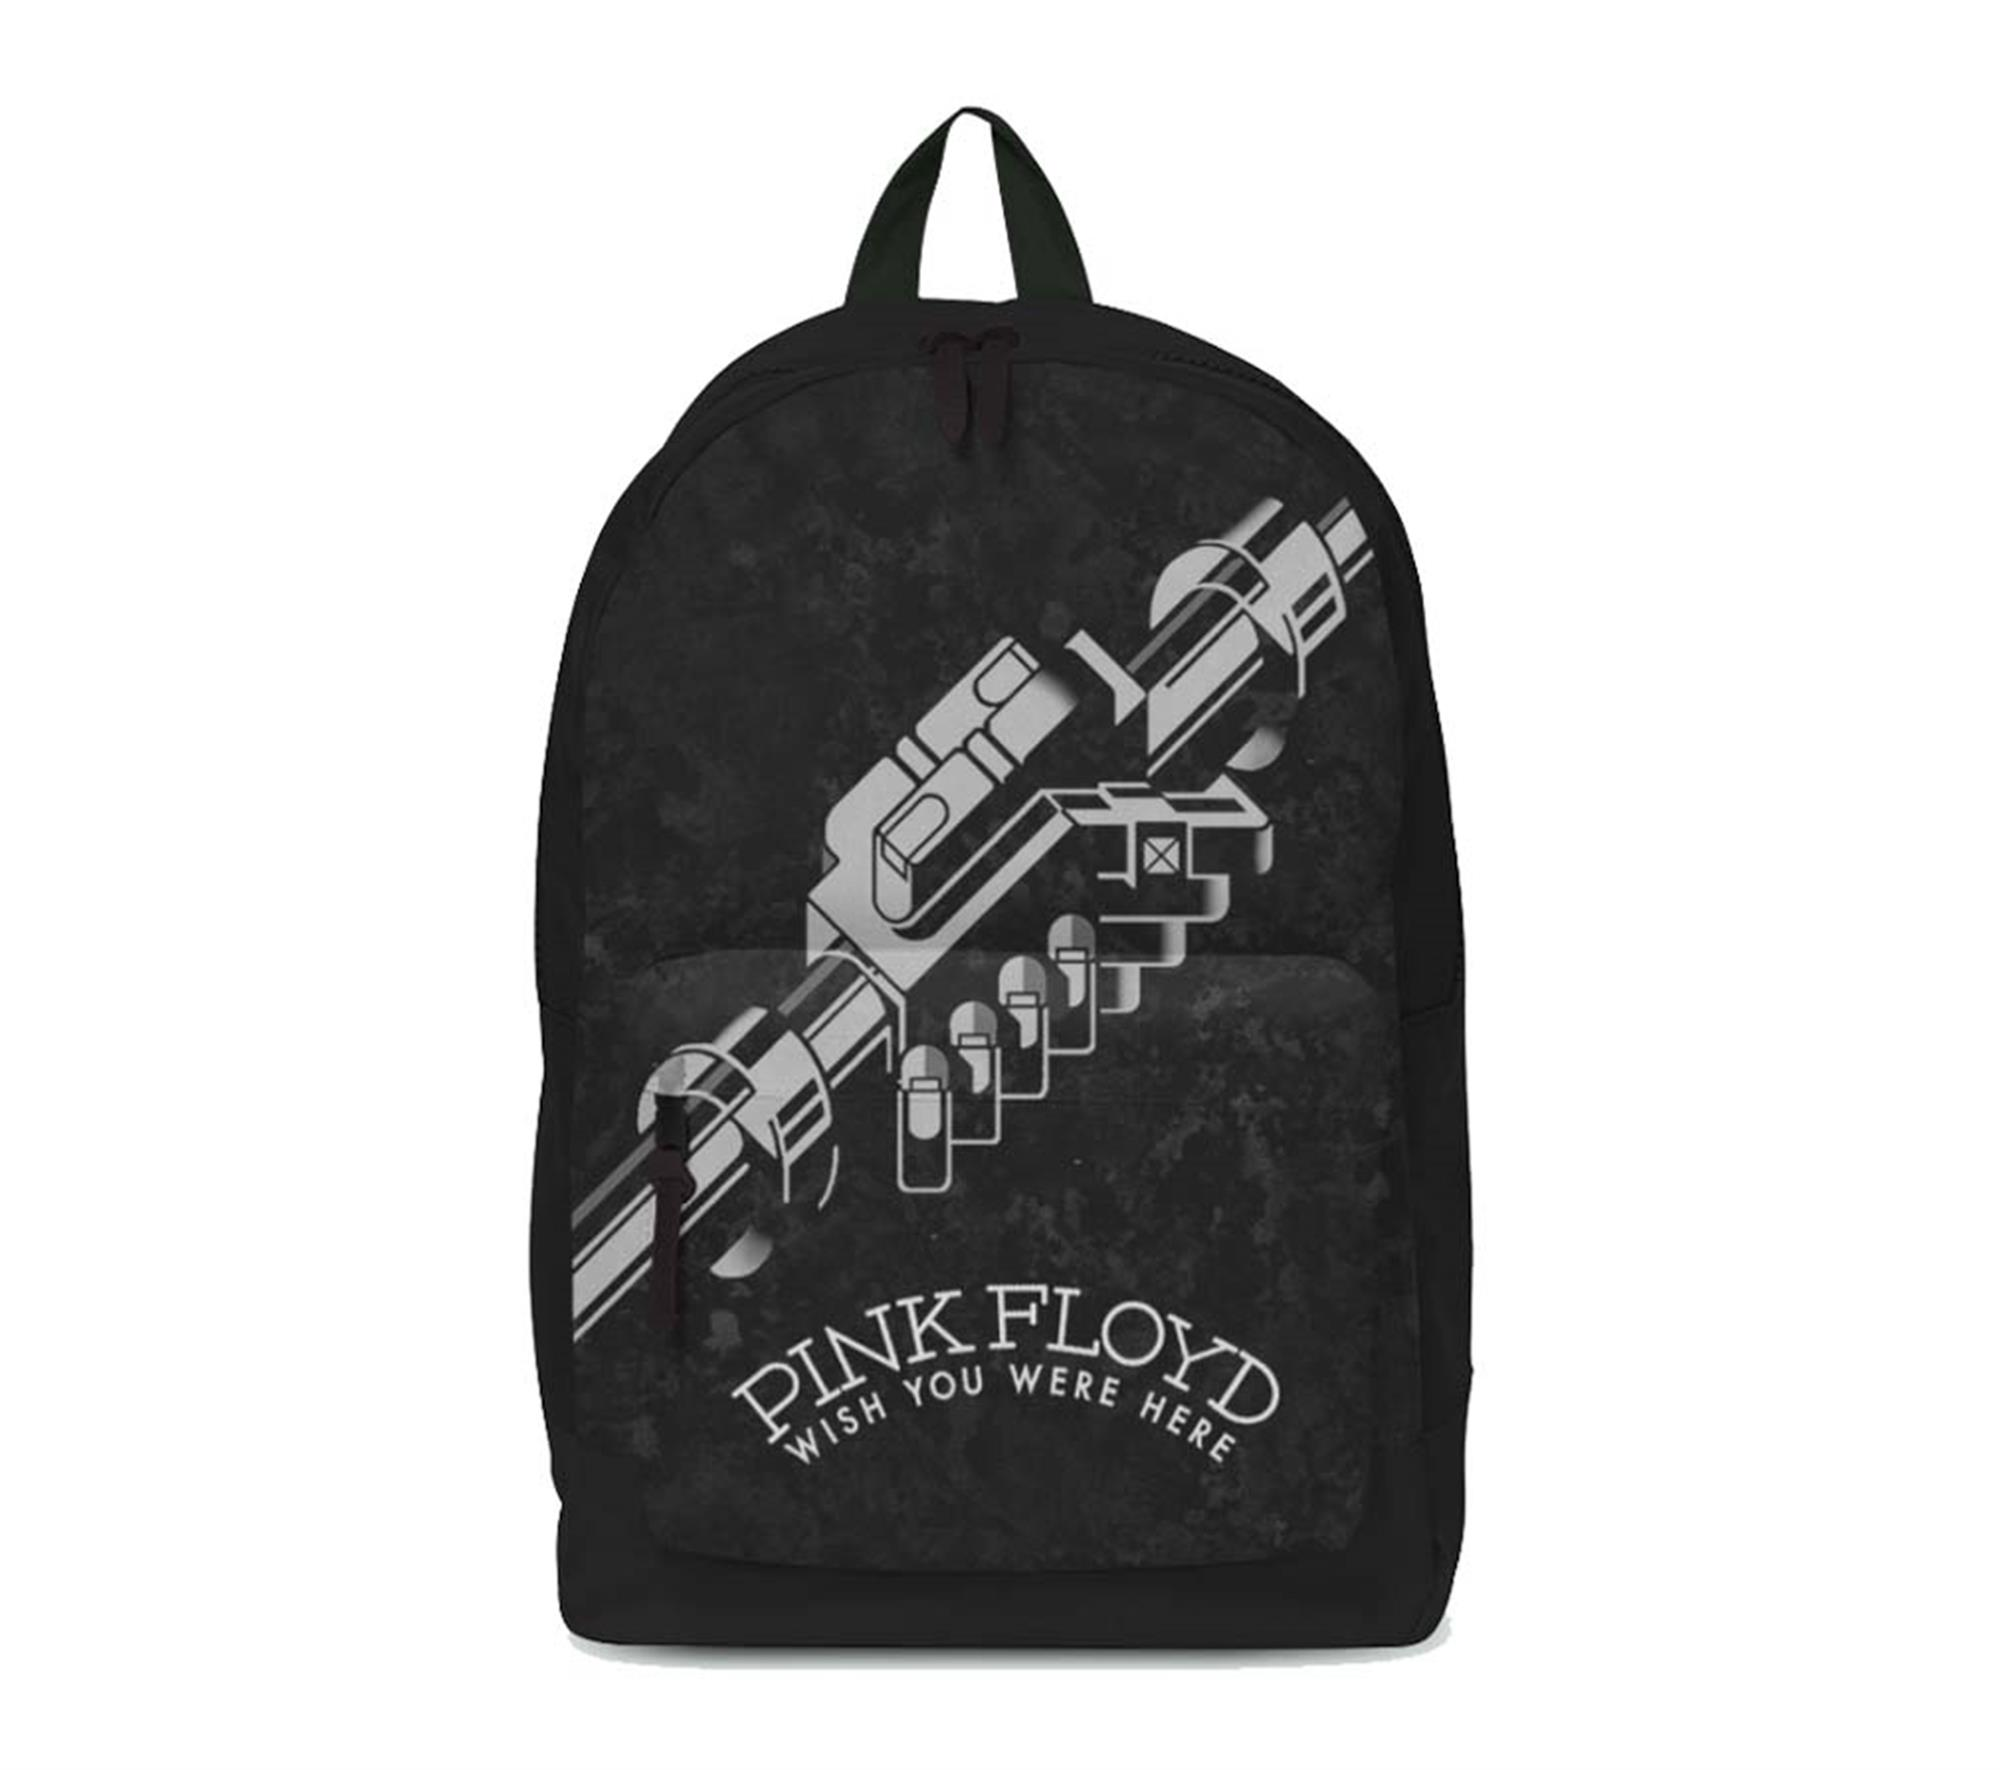 Pink Floyd Wish You Were Here Black and White Classic Backpack